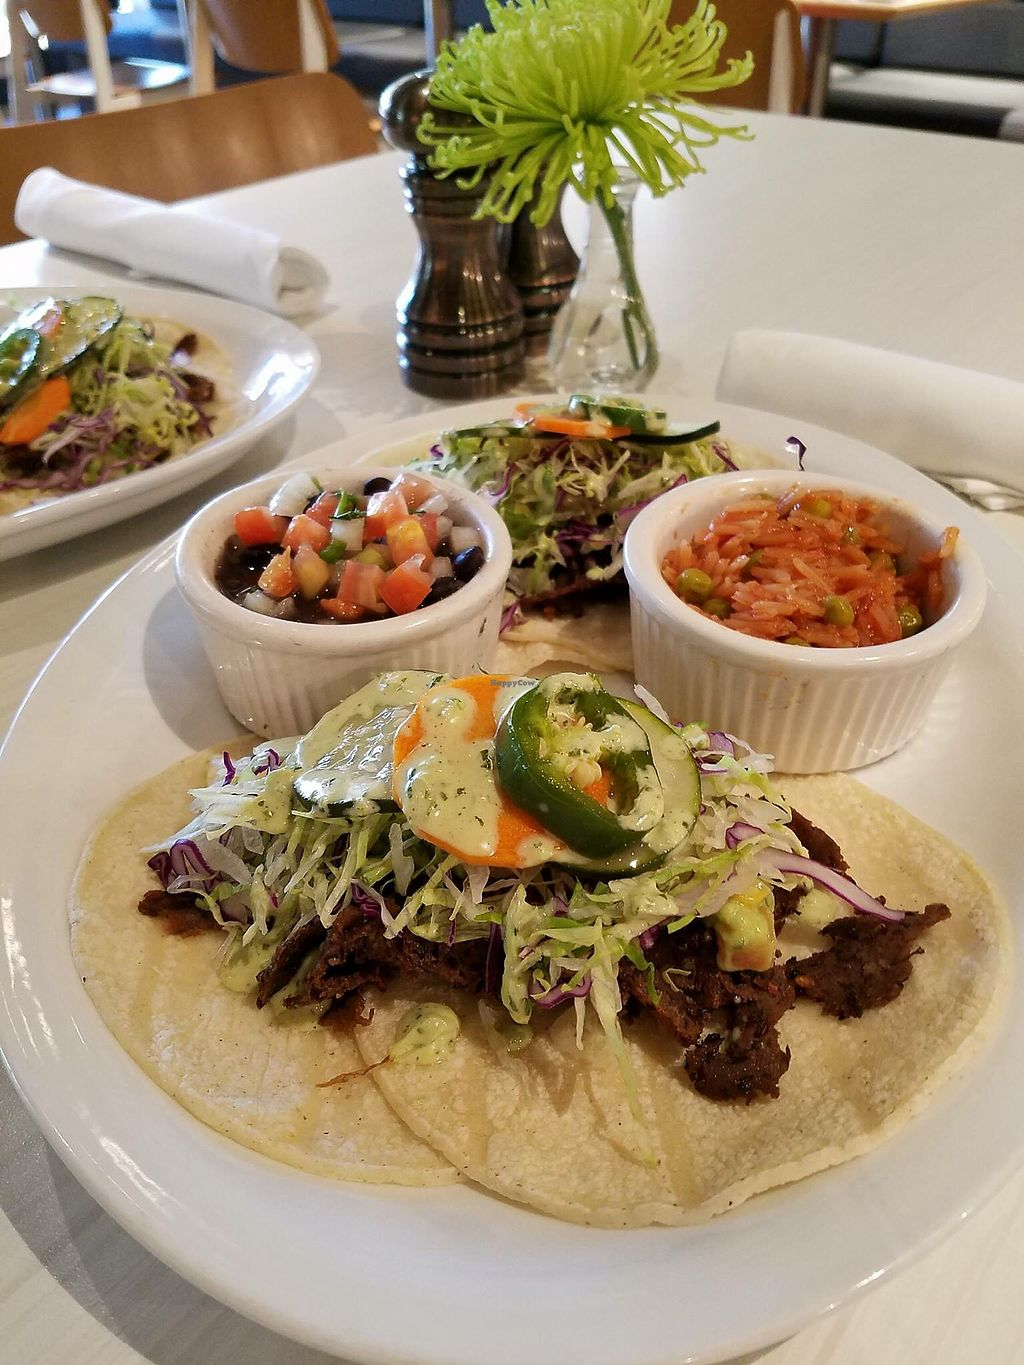 """Photo of Hungry's  by <a href=""""/members/profile/ChristineLee"""">ChristineLee</a> <br/>Spicy Seitan Tacos w/ avocado relish & aioli.  <br/> October 20, 2017  - <a href='/contact/abuse/image/103326/317089'>Report</a>"""